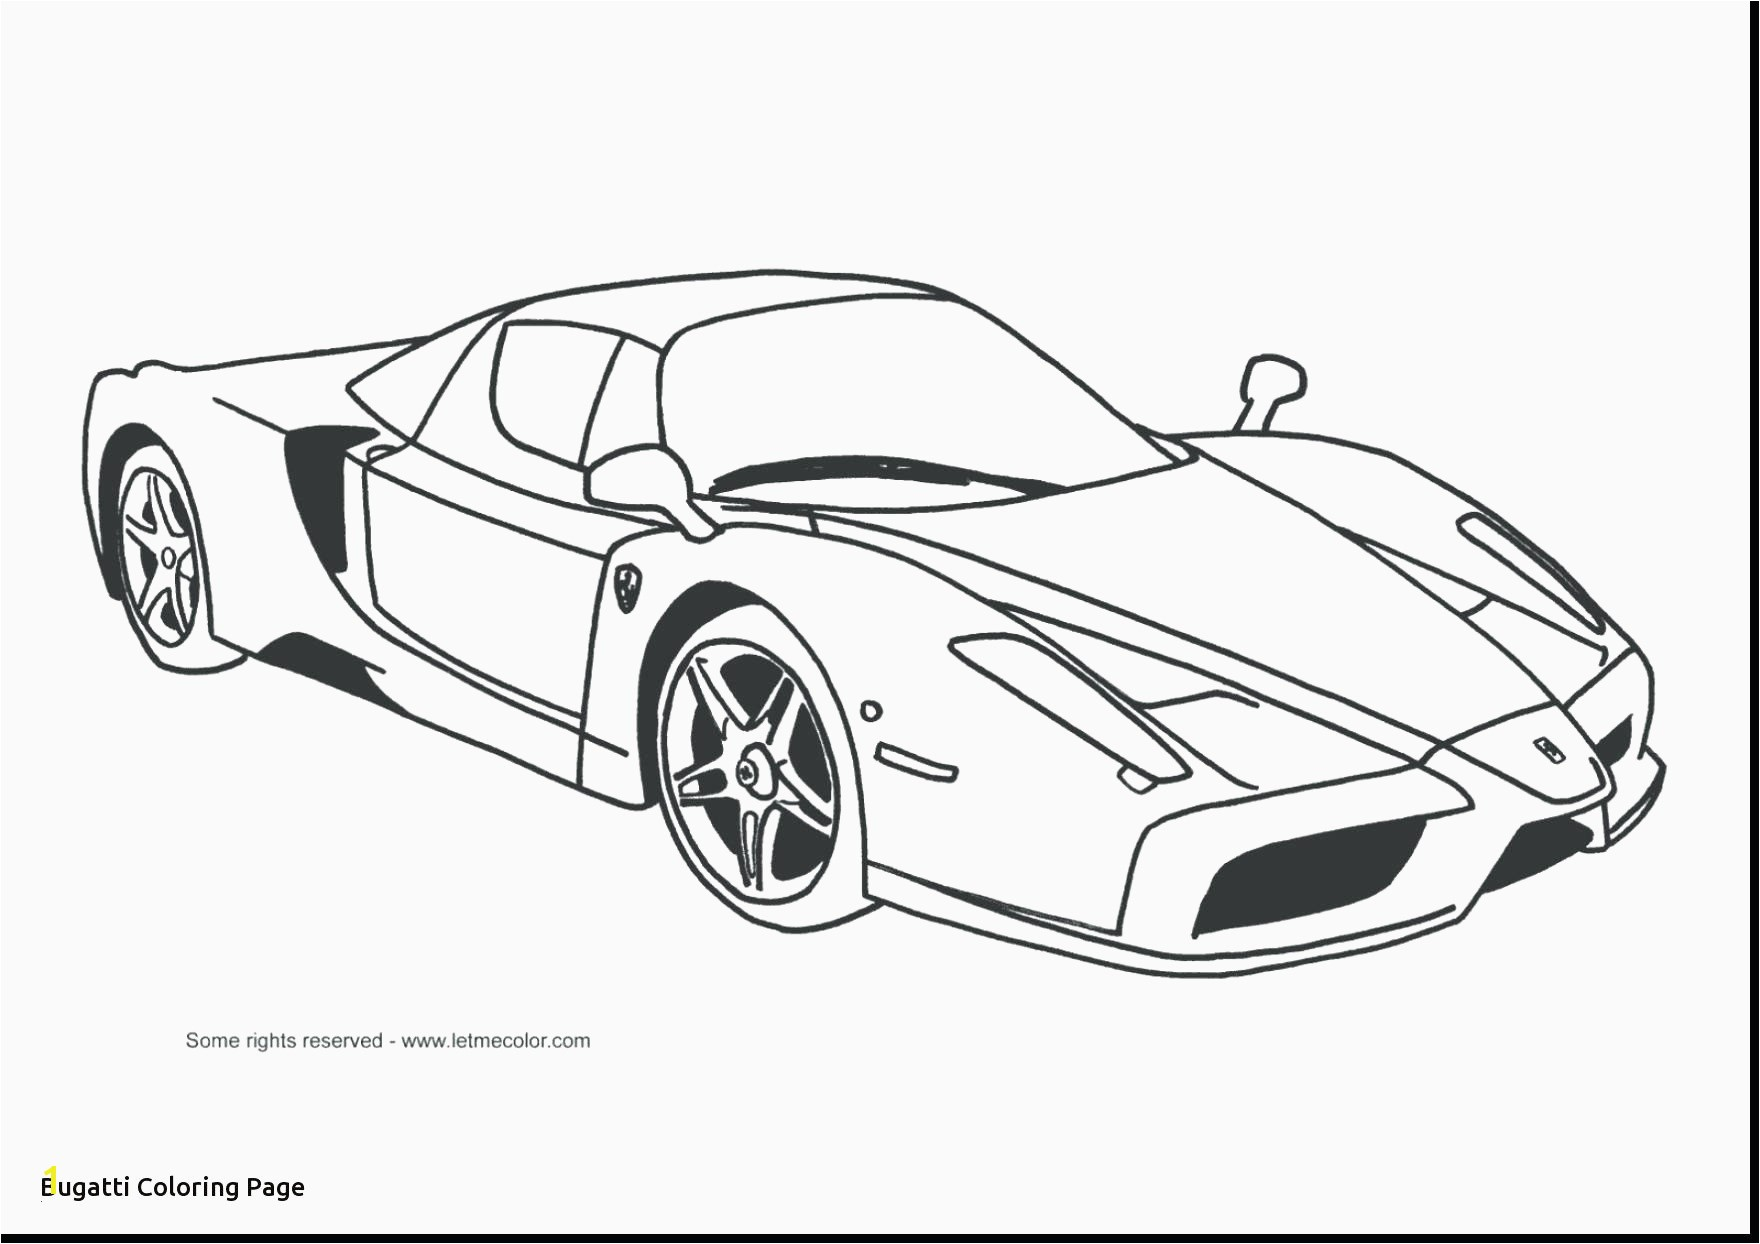 Sports Car Coloring Pages Lamborghini Coloring Pages Elegant Capture Text From Image Free